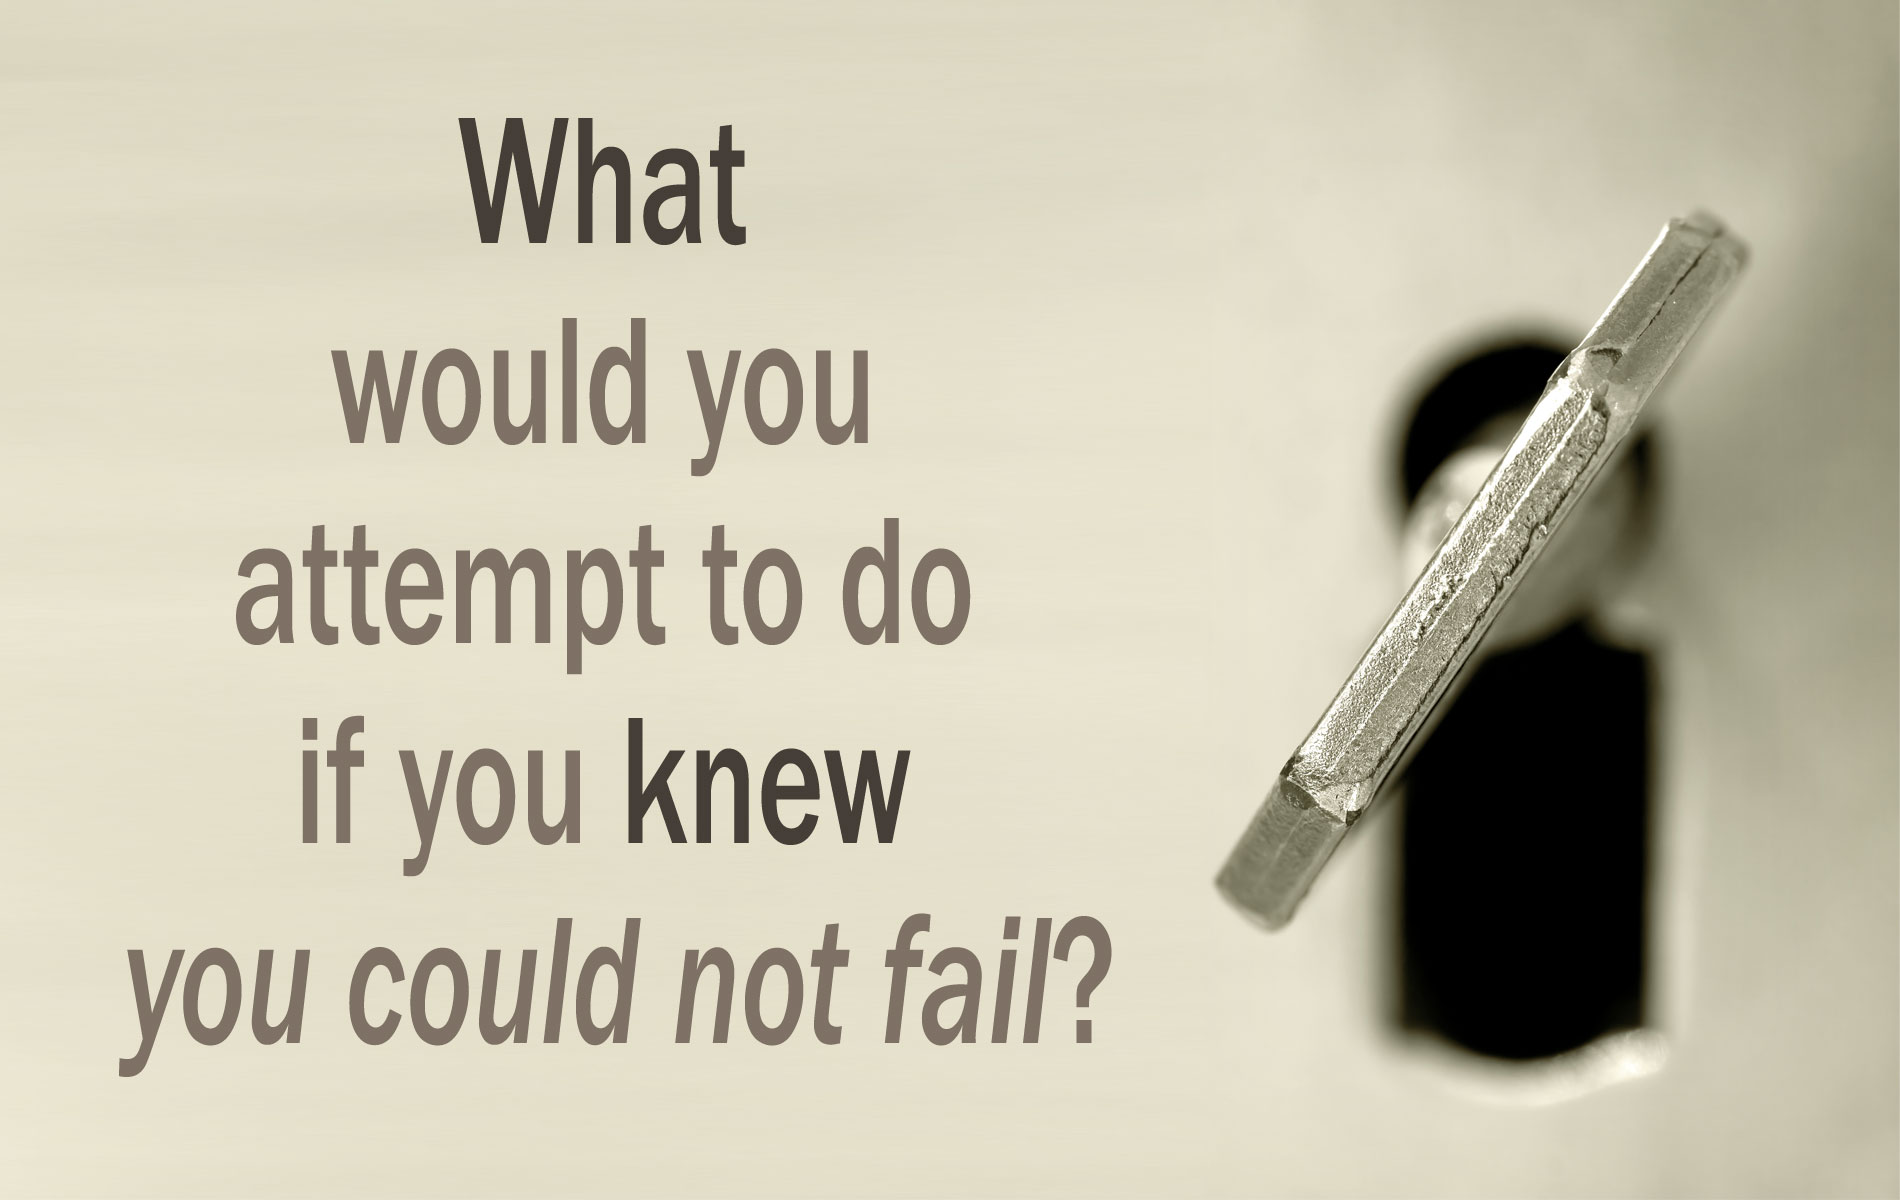 Motivational Quote on Failure: What would you attempt to do